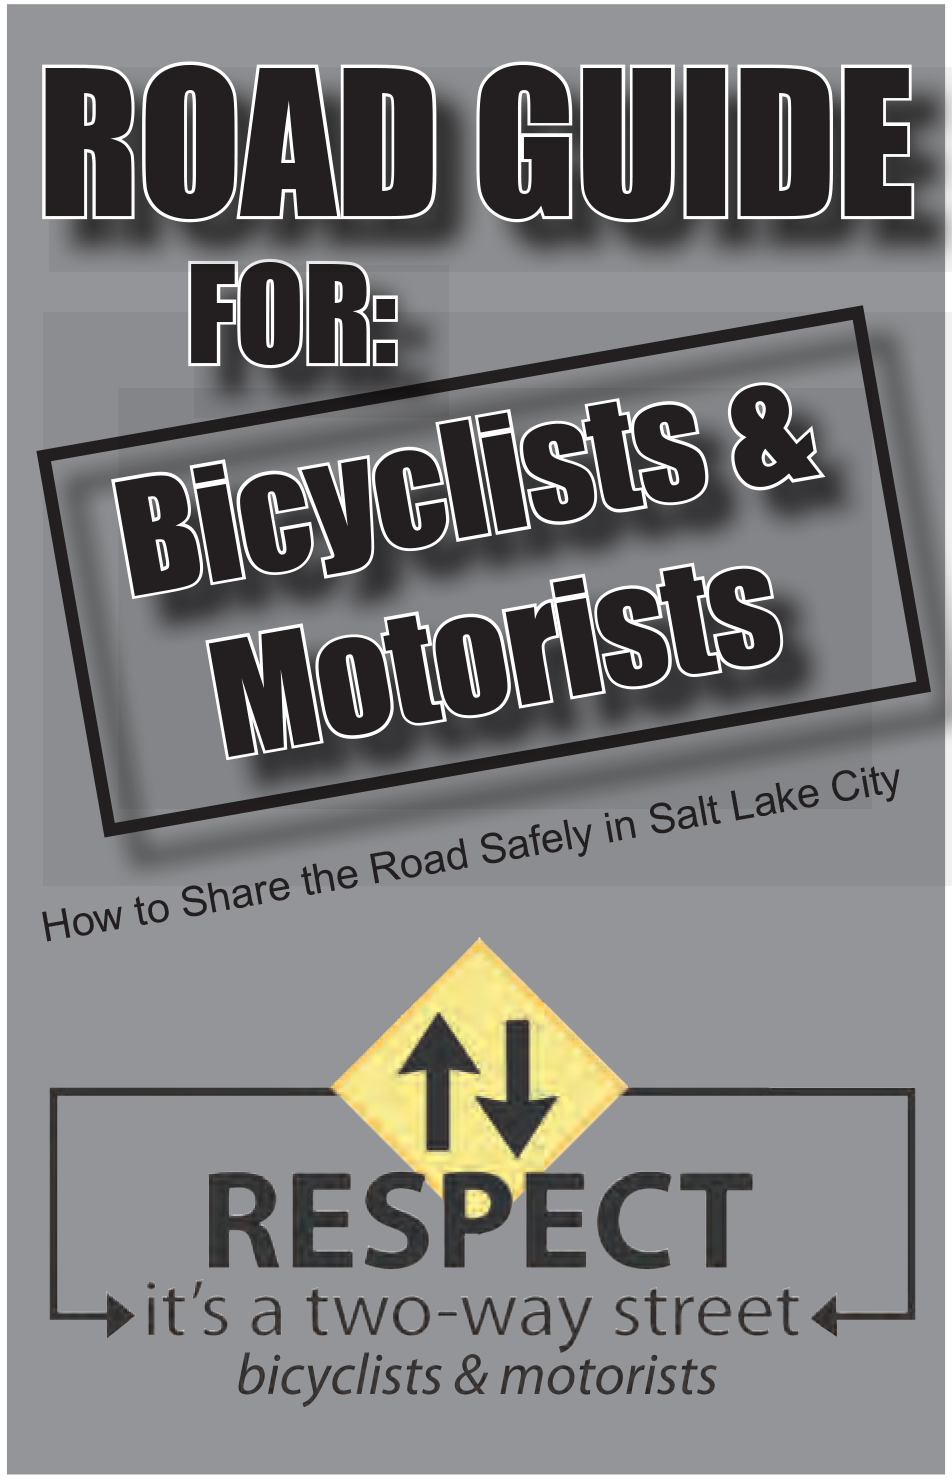 Road Guide for: Bicyclists & Motorists